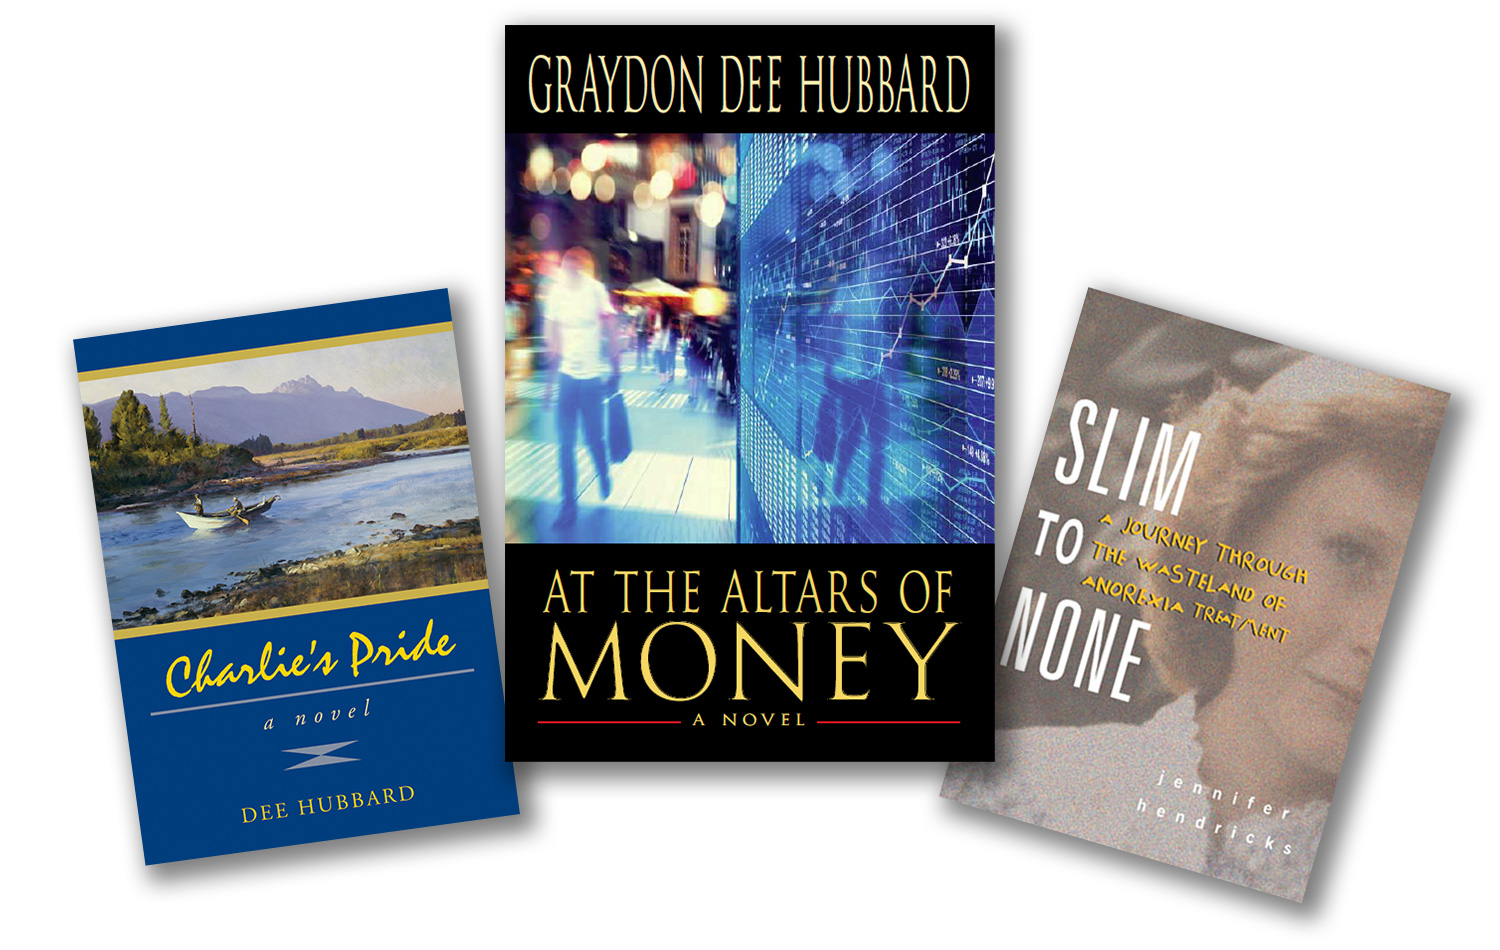 Collage of Dee Hubbard's three book covers: Charlie's Pride, At the Altars of Money, and Slim to None